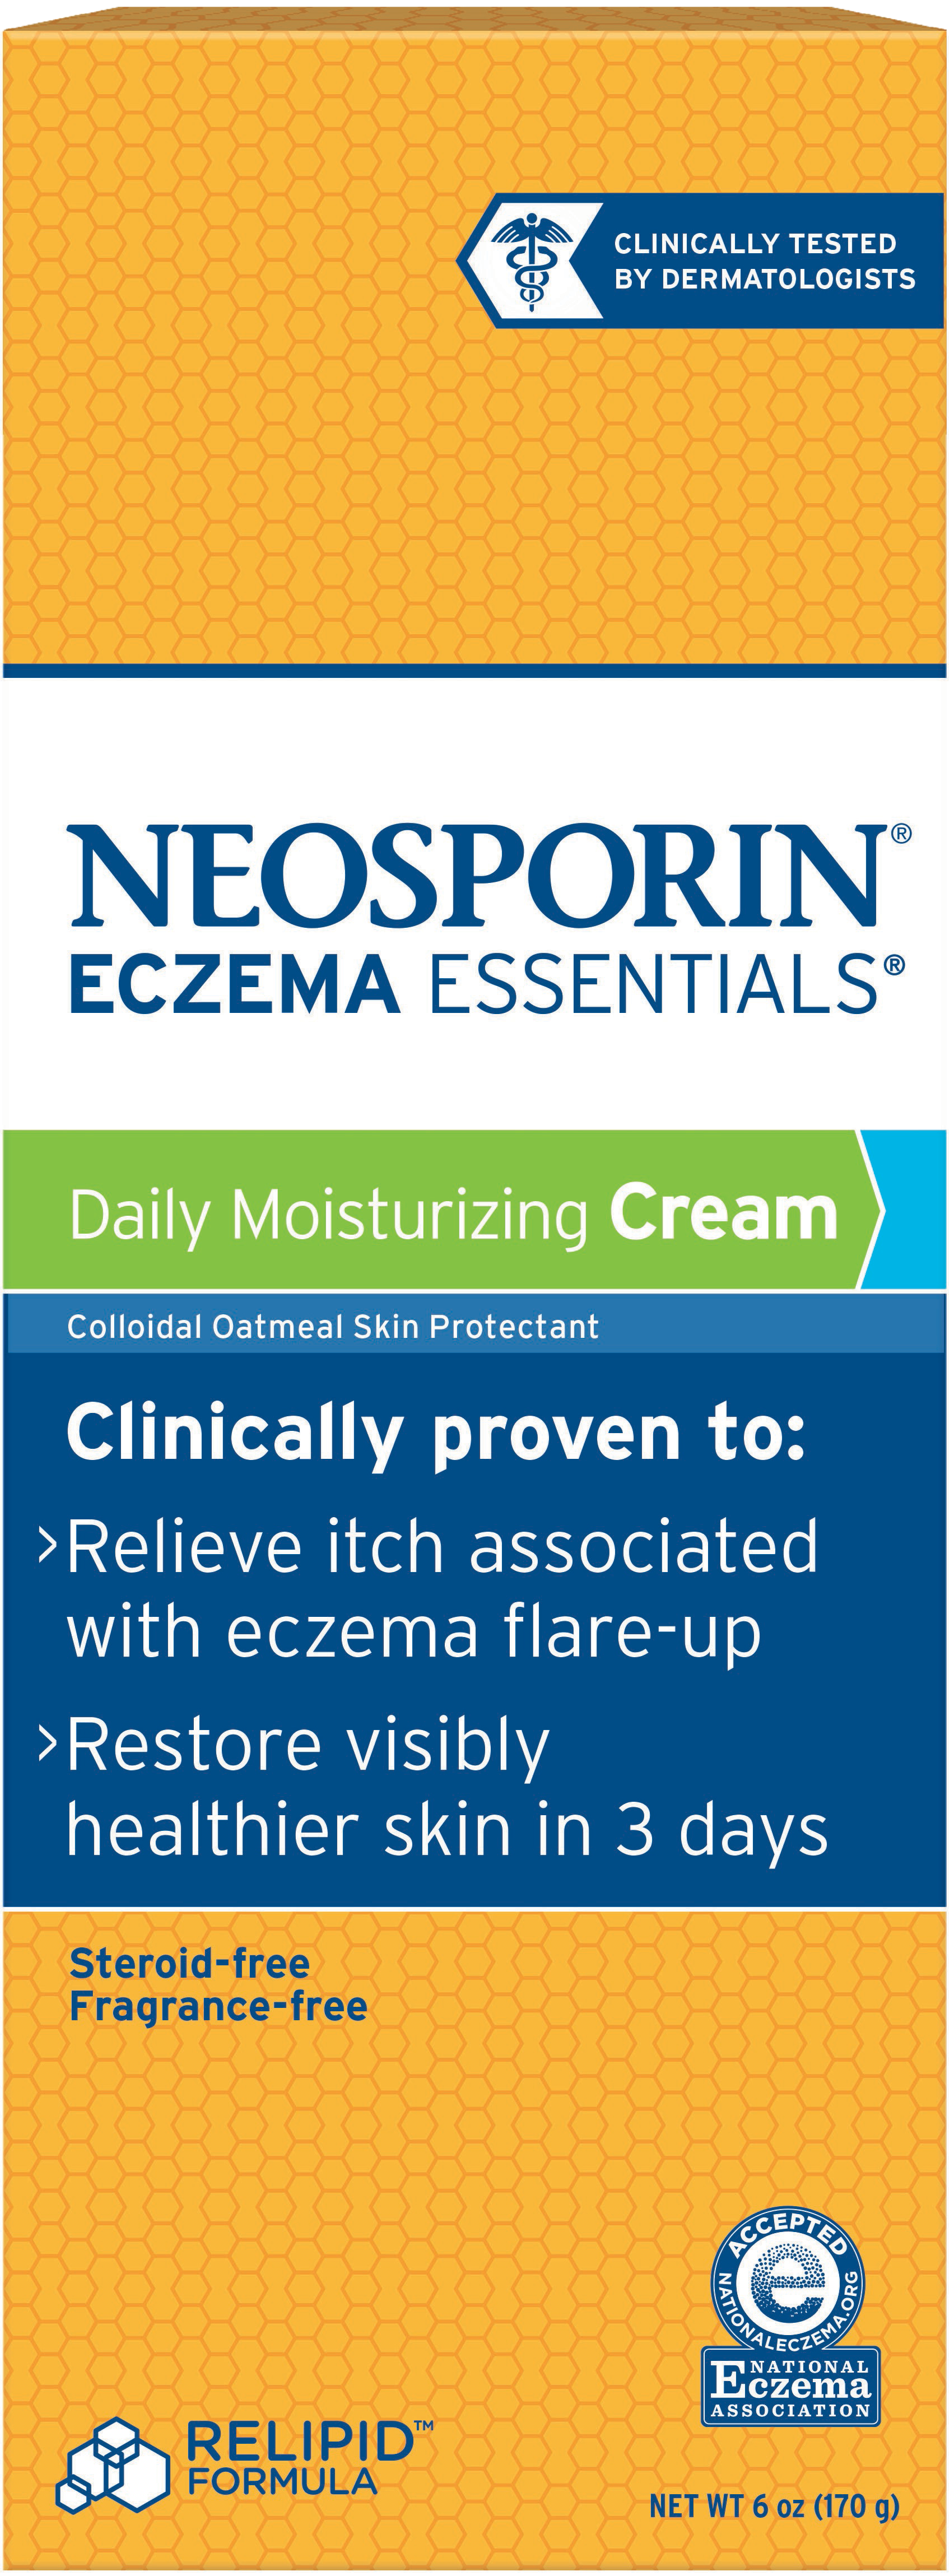 NEOSPORIN® ECZEMA ESSENTIALS® Daily Moisturizing Cream